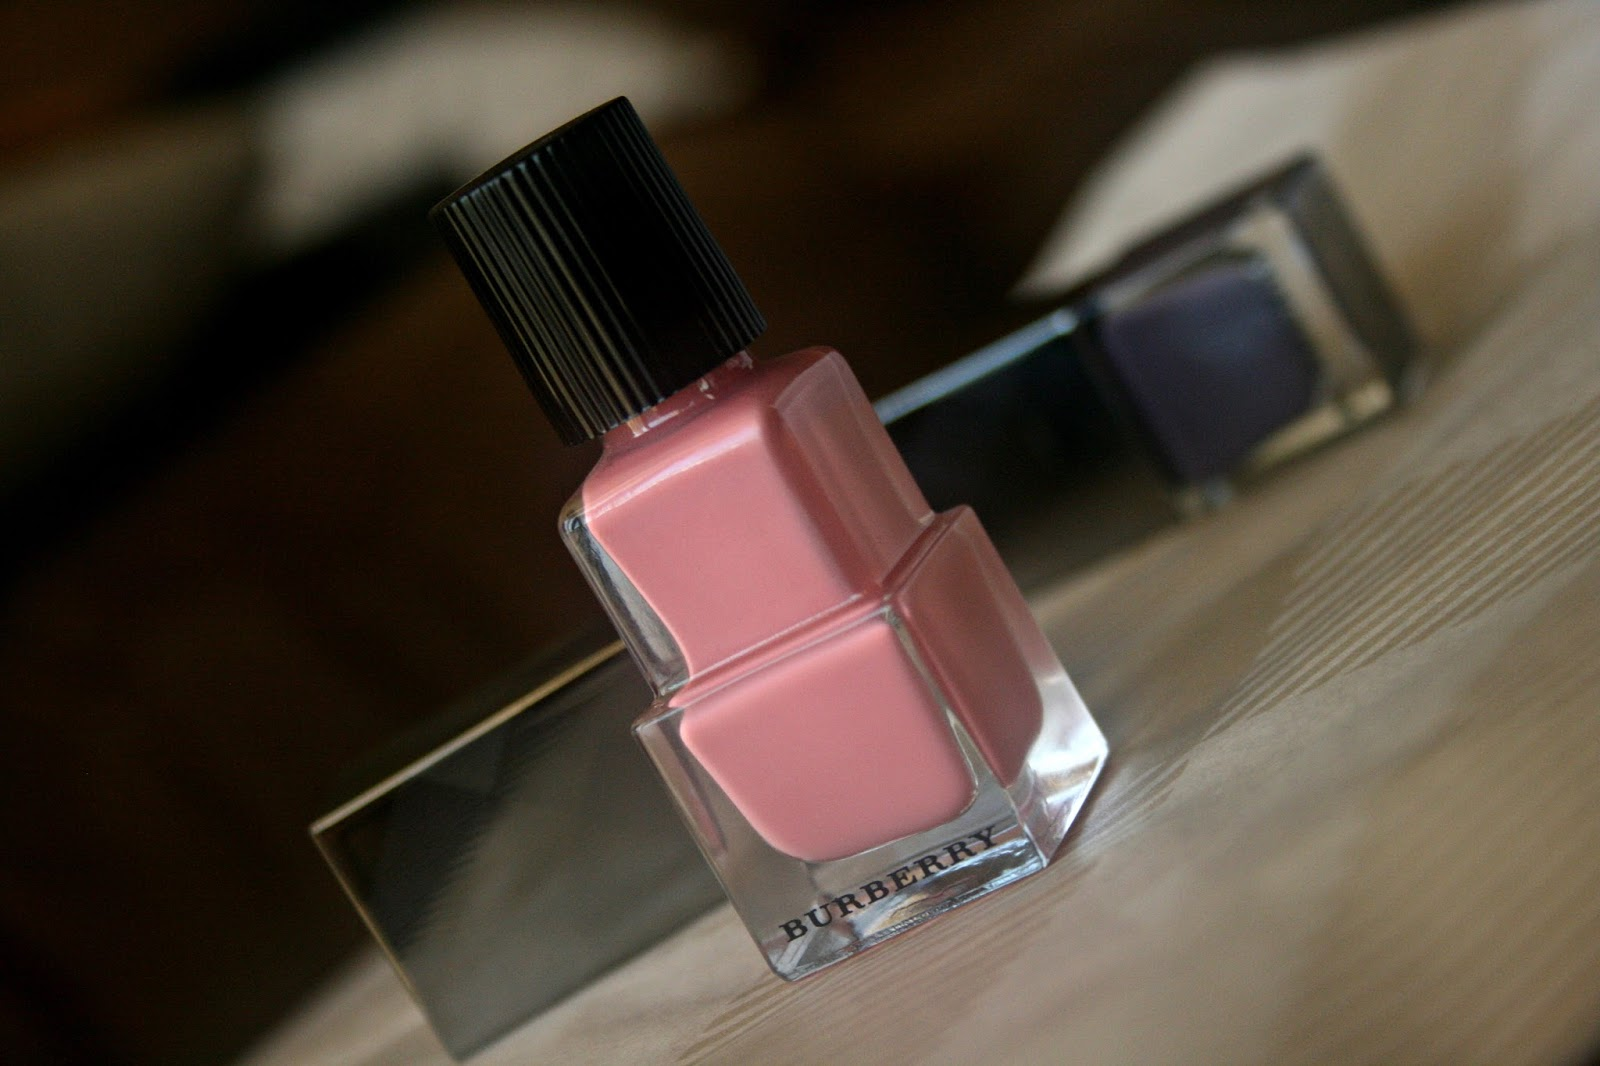 Burberry Beauty Nail Polish in Rose Pink No. 400 Review, Photo, Swatches and NOTD